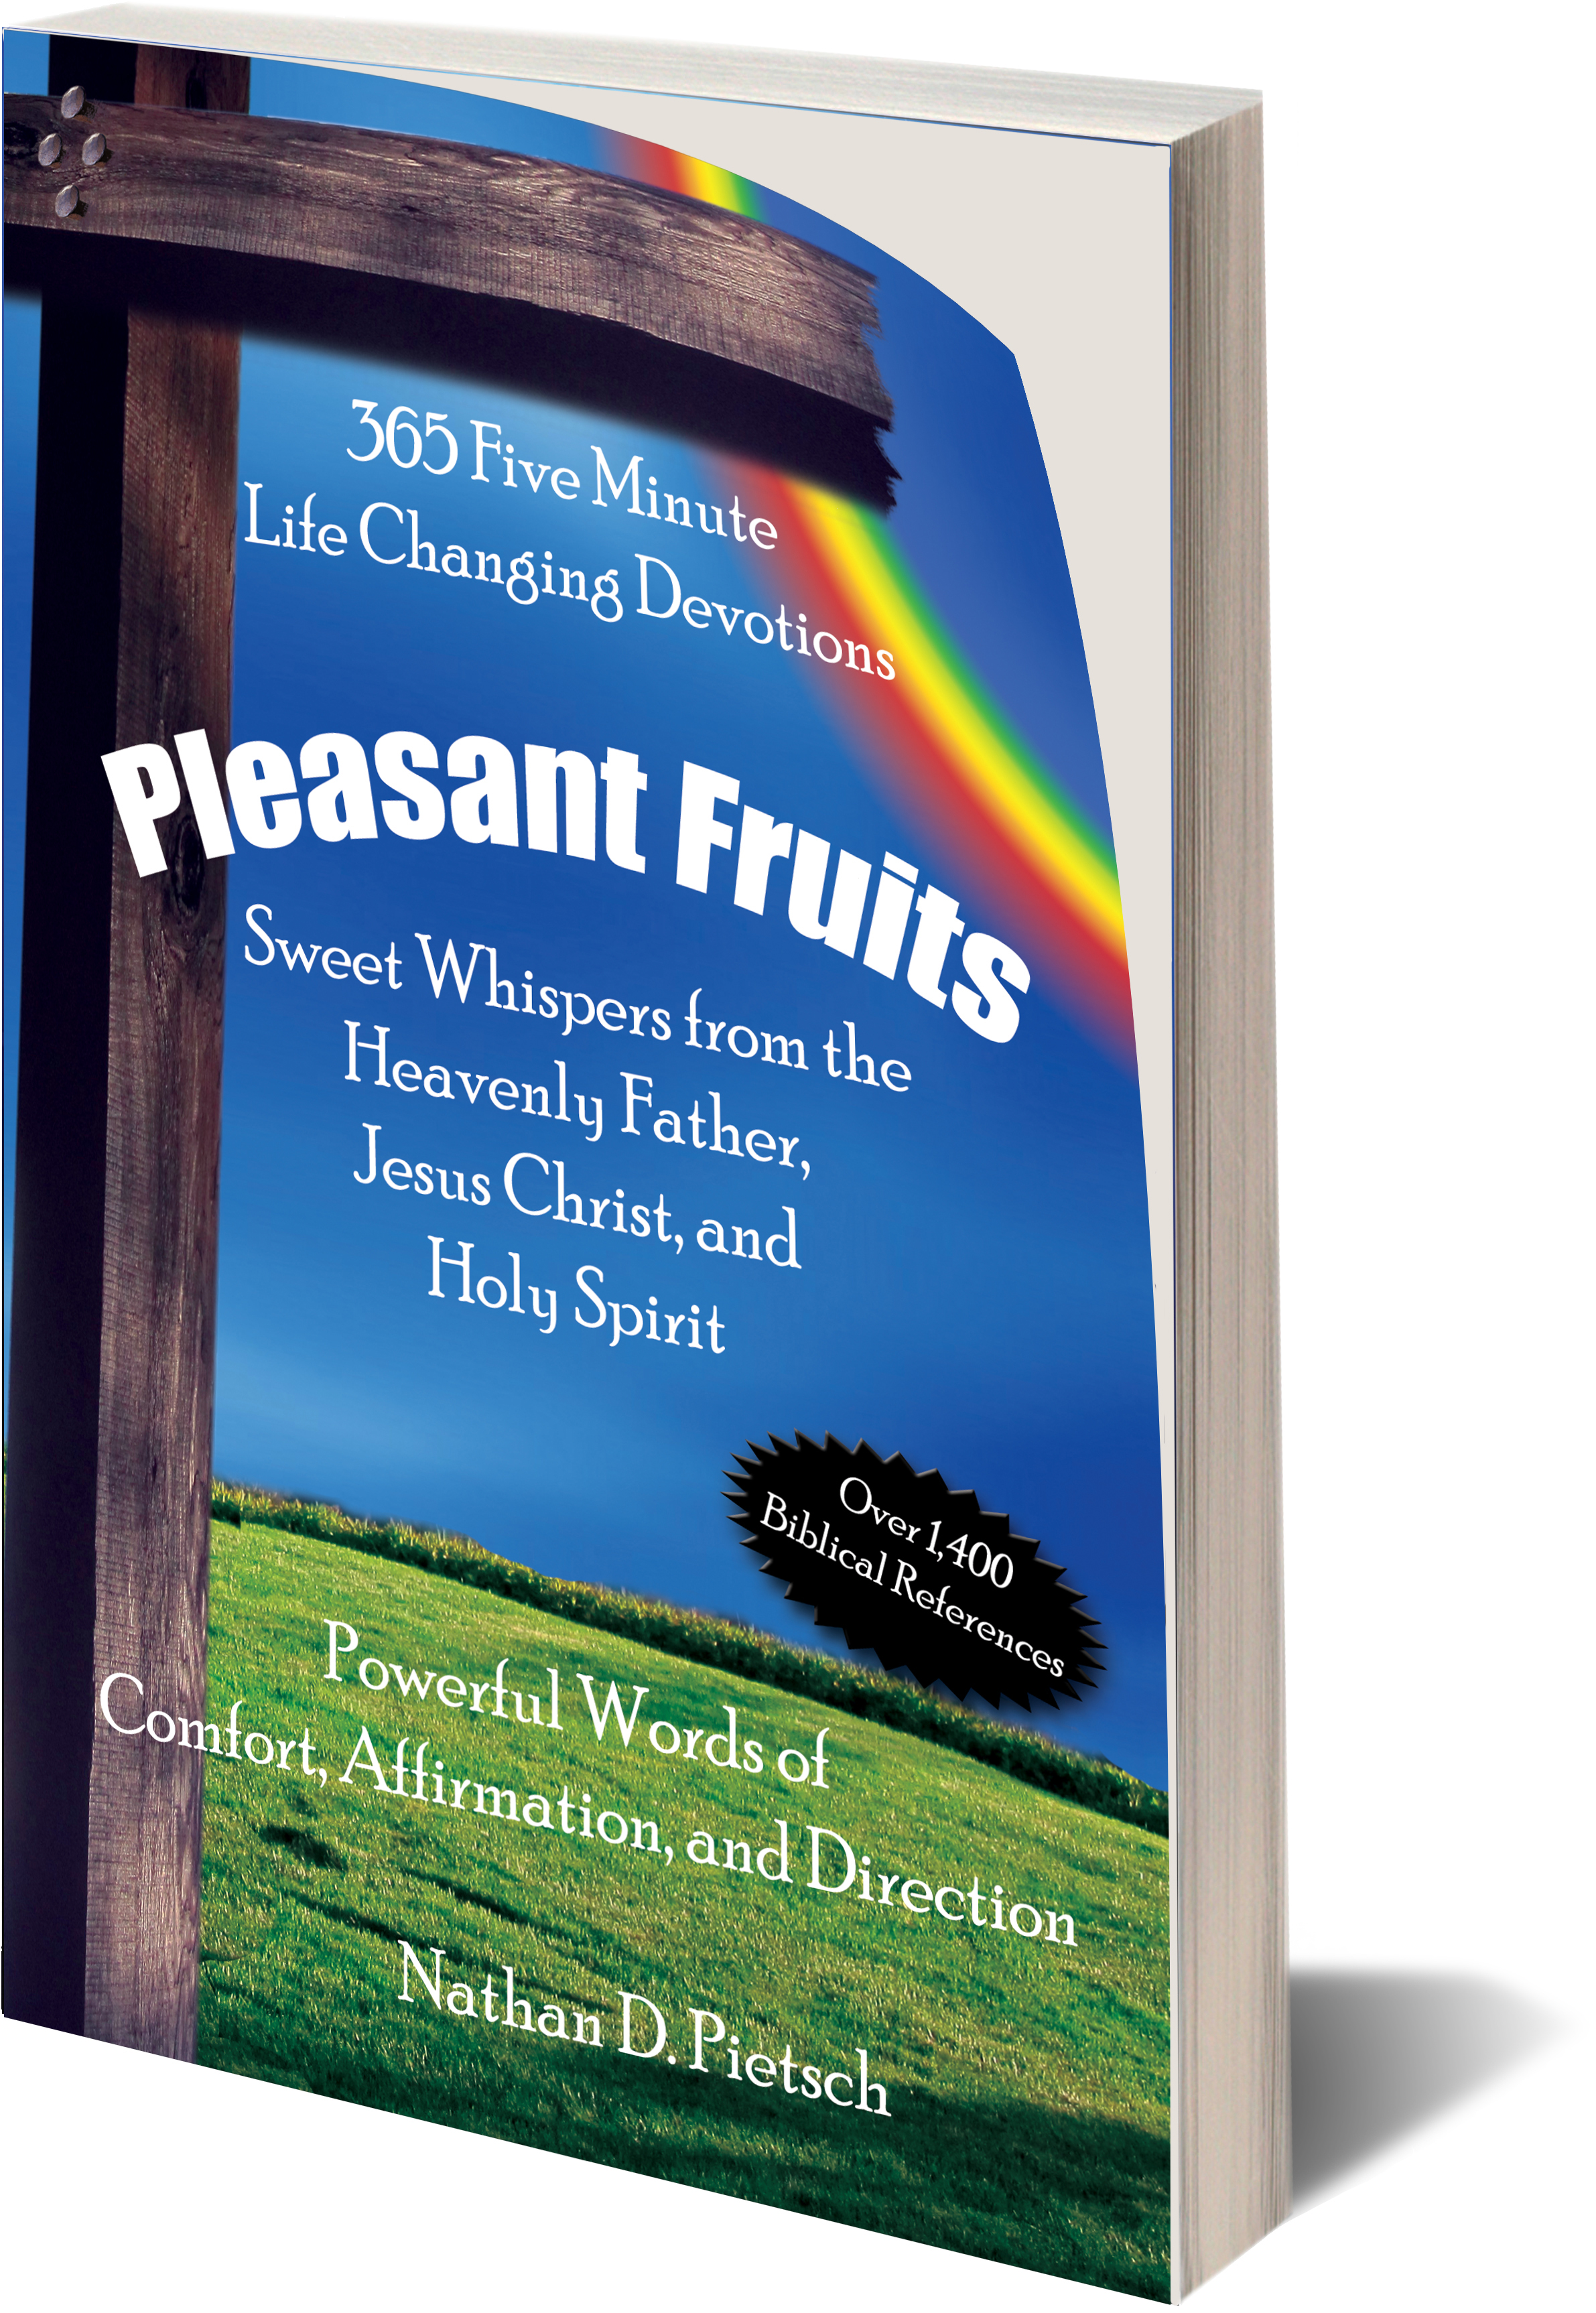 Pleasant Fruits, written by Nathan D. Pietsch